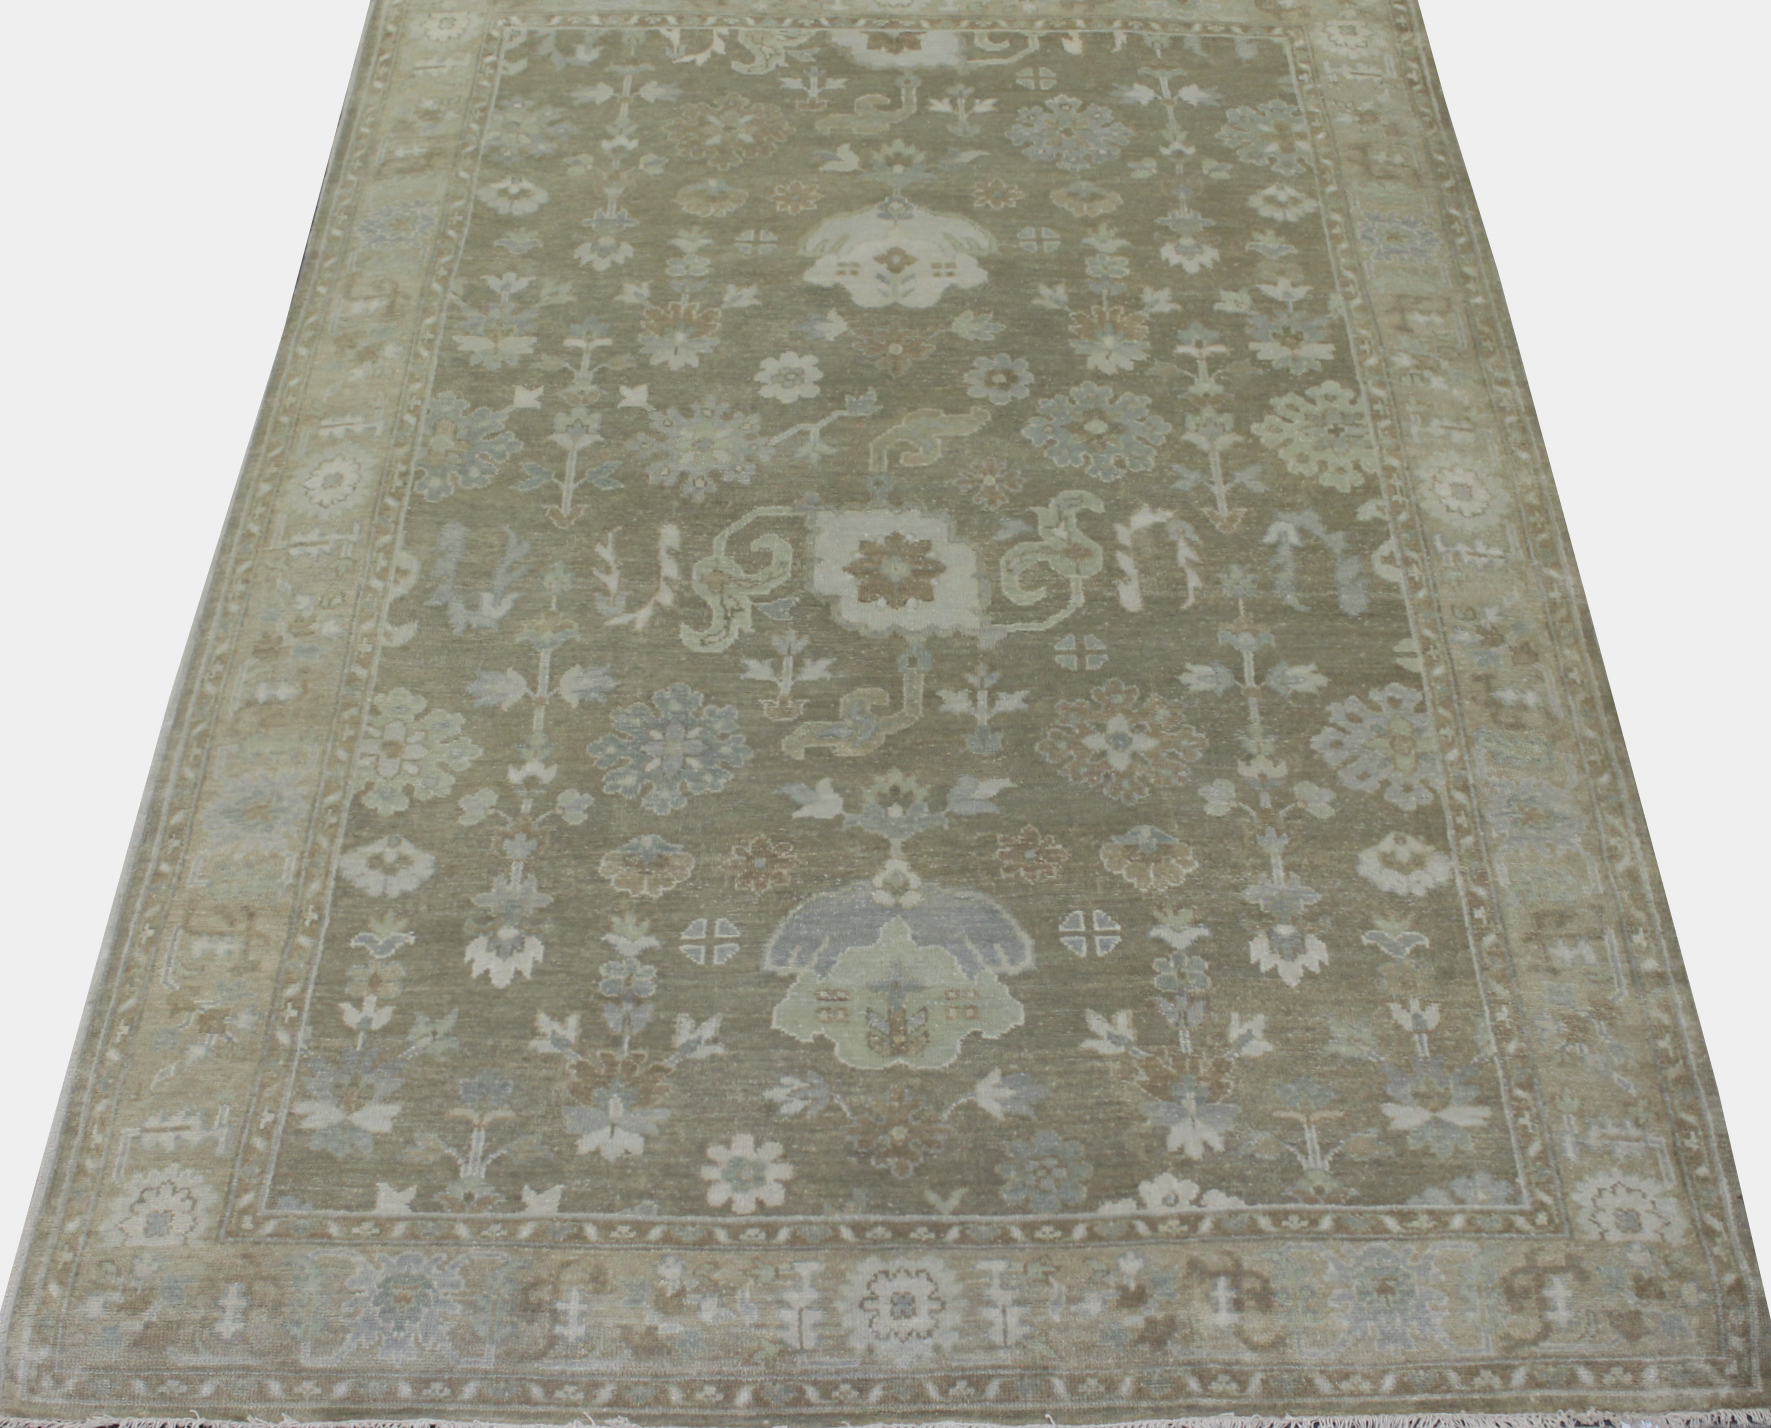 6x9 Oushak Hand Knotted Wool Area Rug - MR023767